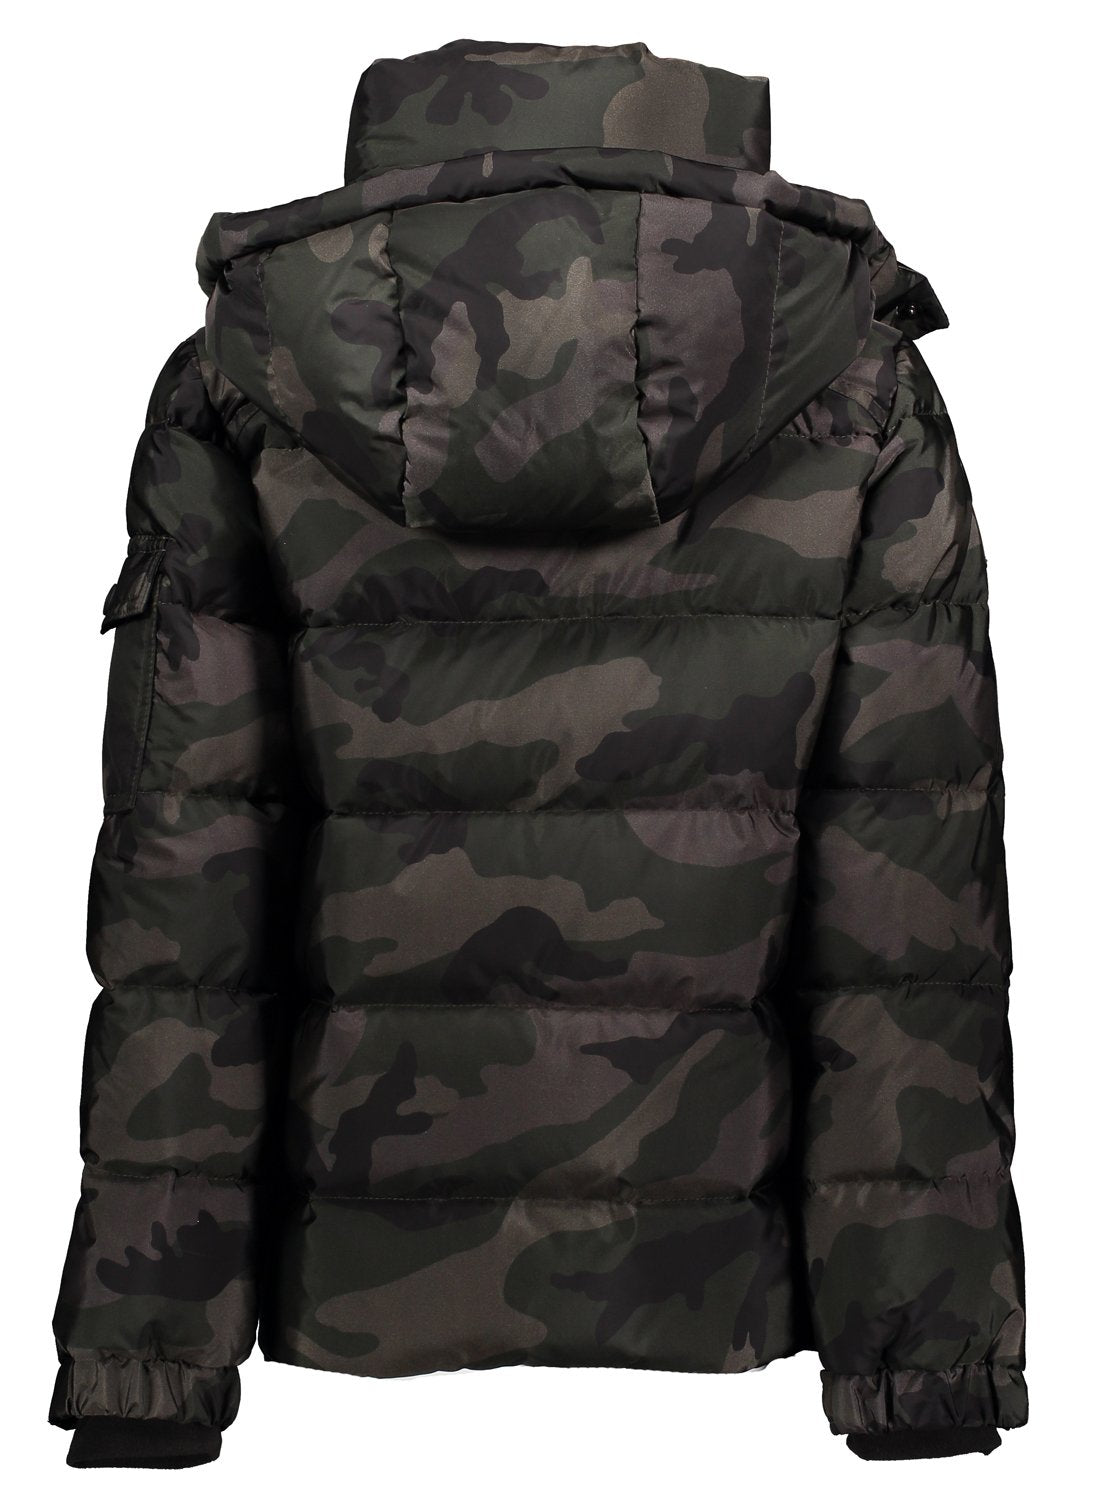 TODDLER BOYS CAMO GLACIER TODDLER BOYS CAMO GLACIER - SAM.